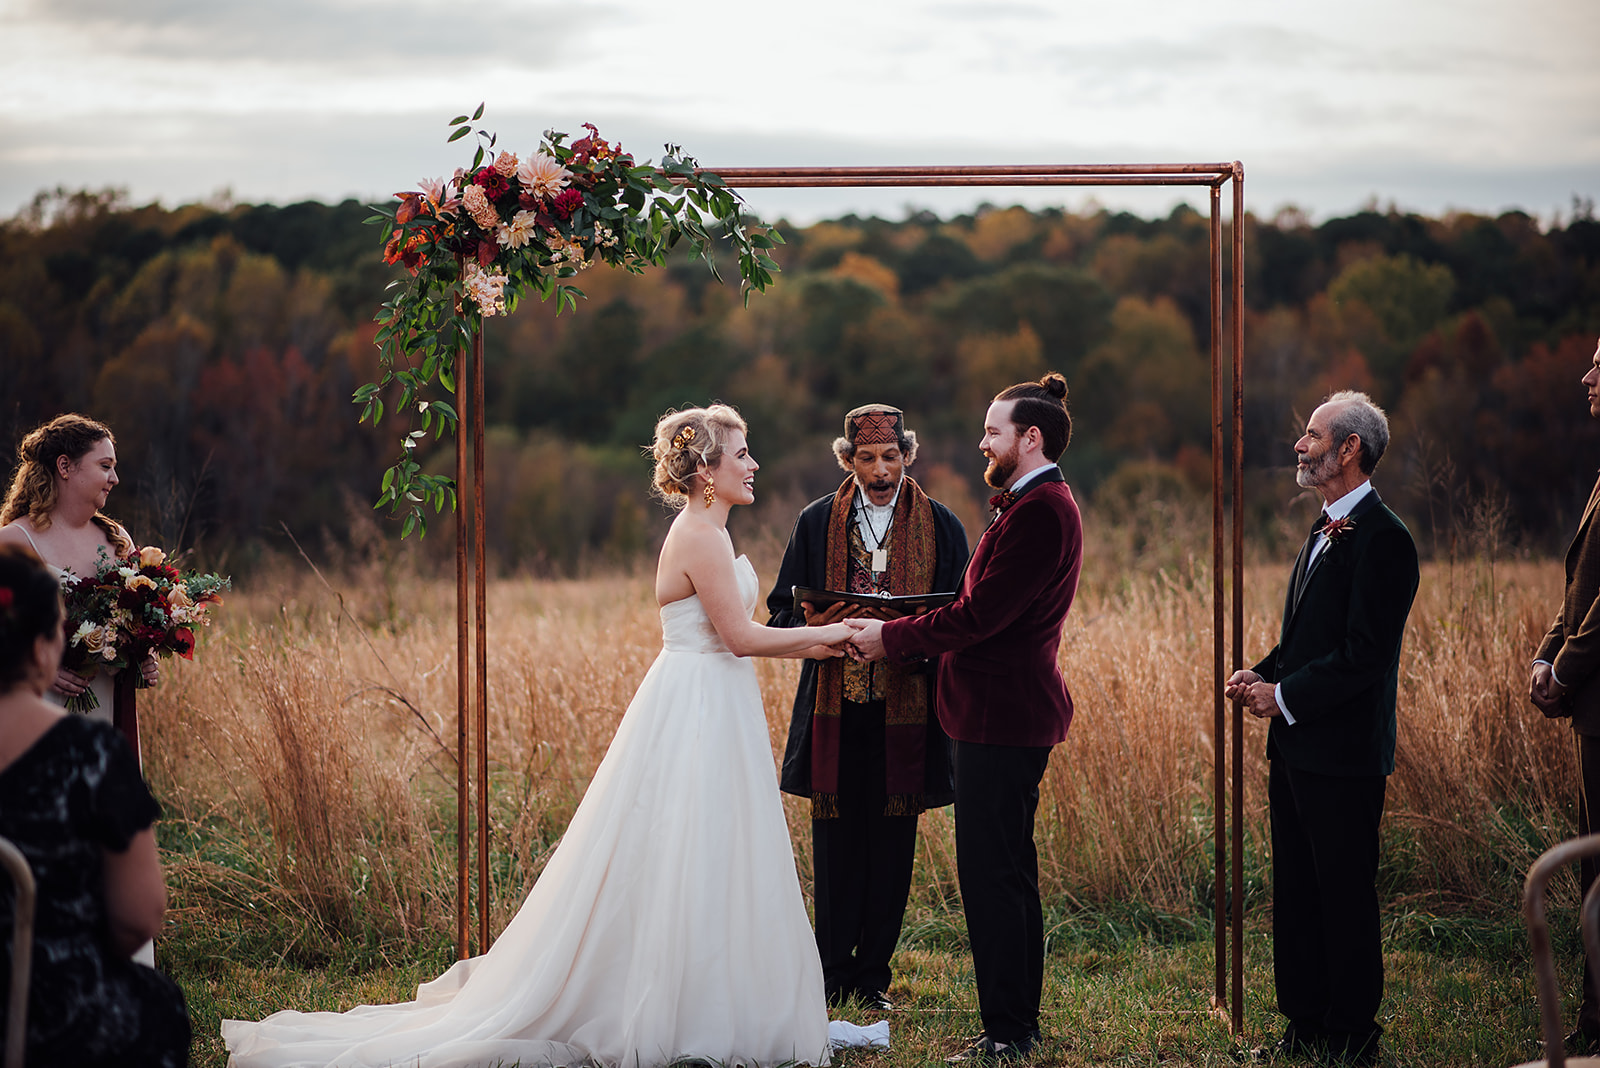 Fall Wedding, Blush and Burgundy flowers, Arbor, Velvet, Color Fields, The Meadows- Raleigh